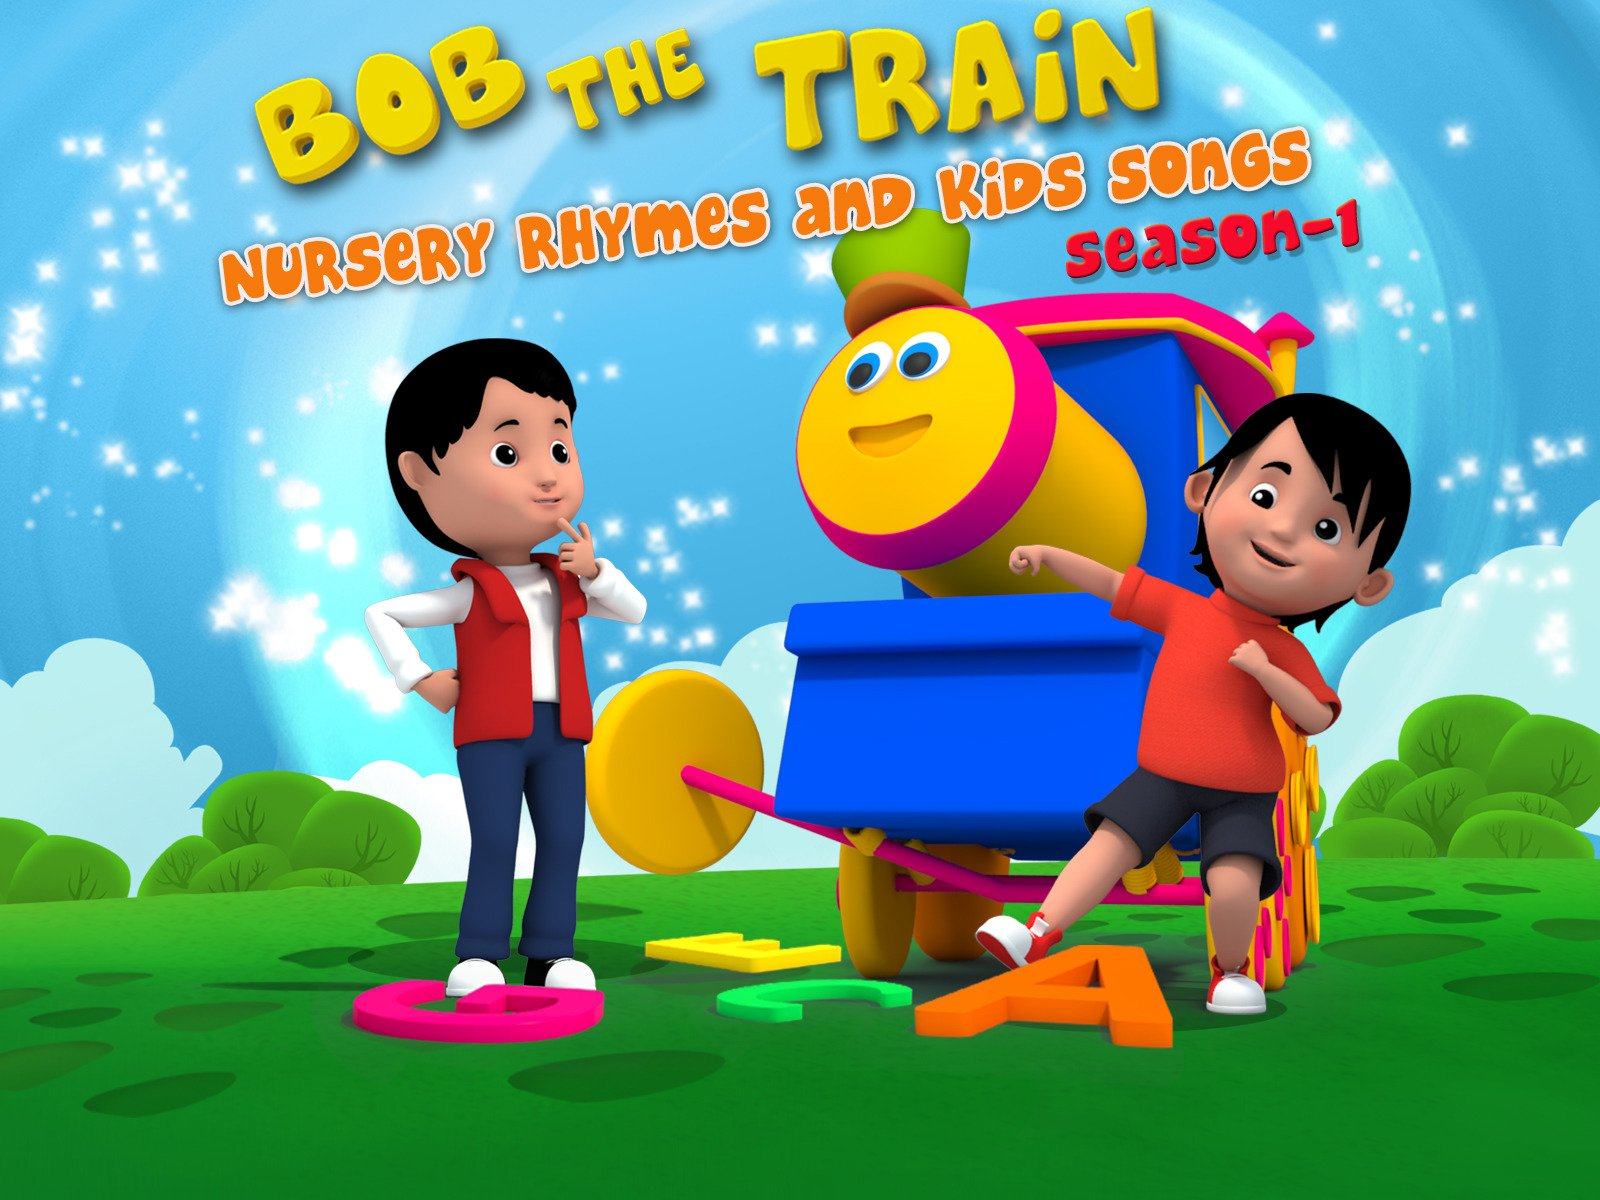 Bob the Train: Nursery Rhymes and Kids Songs - Season 1